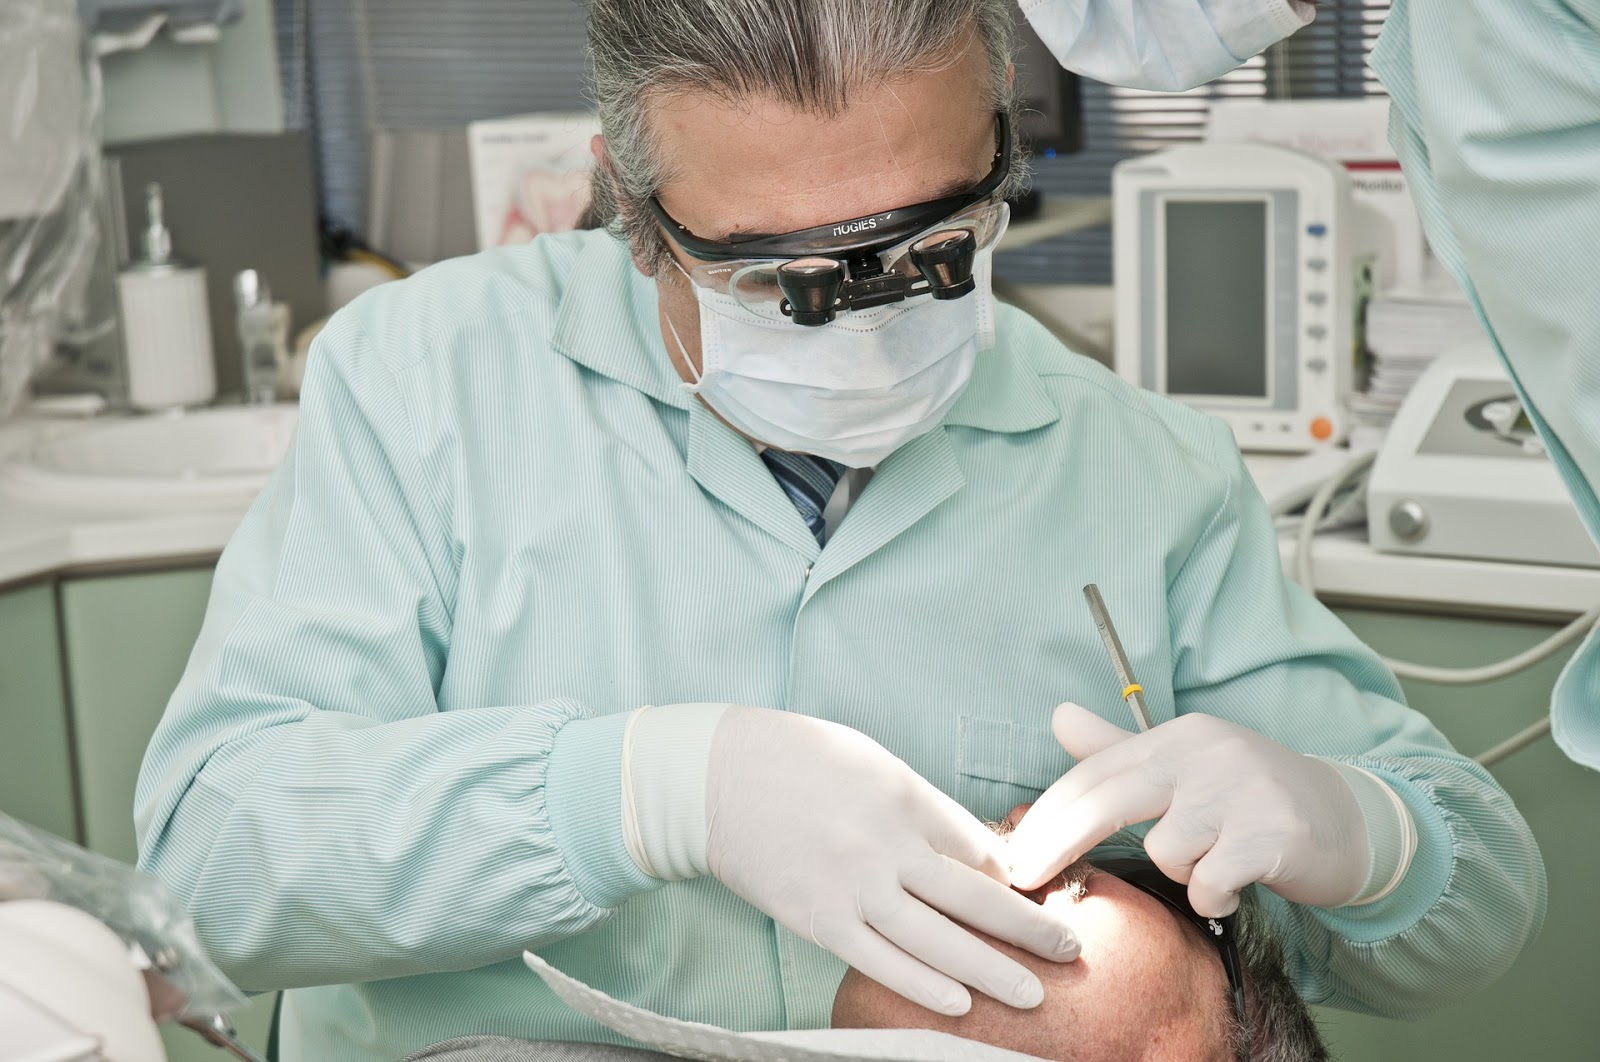 Will a Past Root Canal Procedure Affect Dental Implants in Any Way